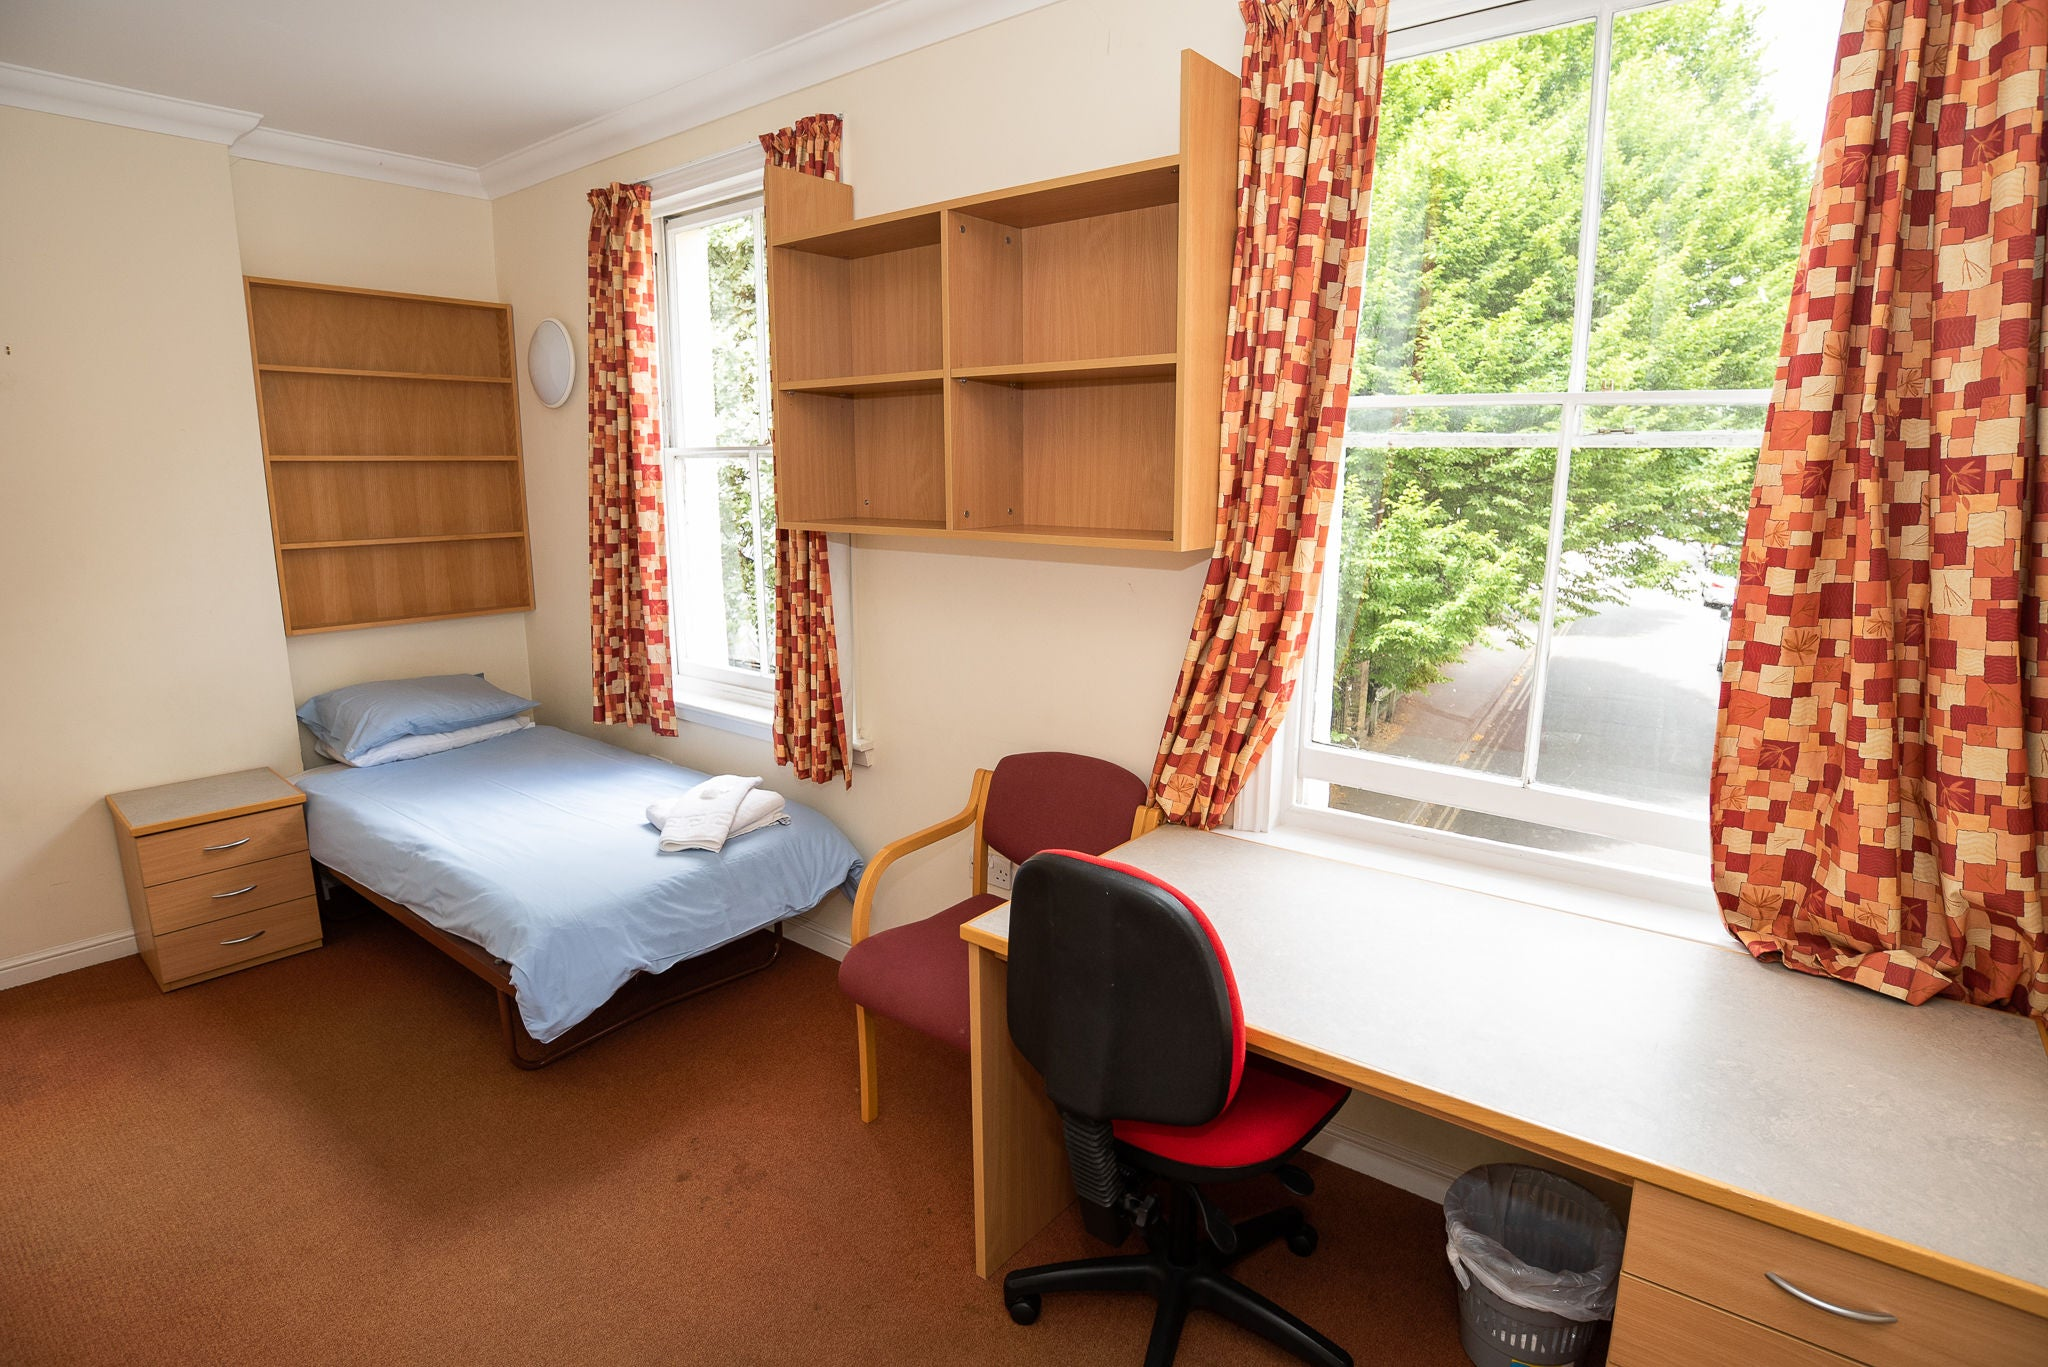 Summer school accommodation in Lincoln college, part of the University of Oxford